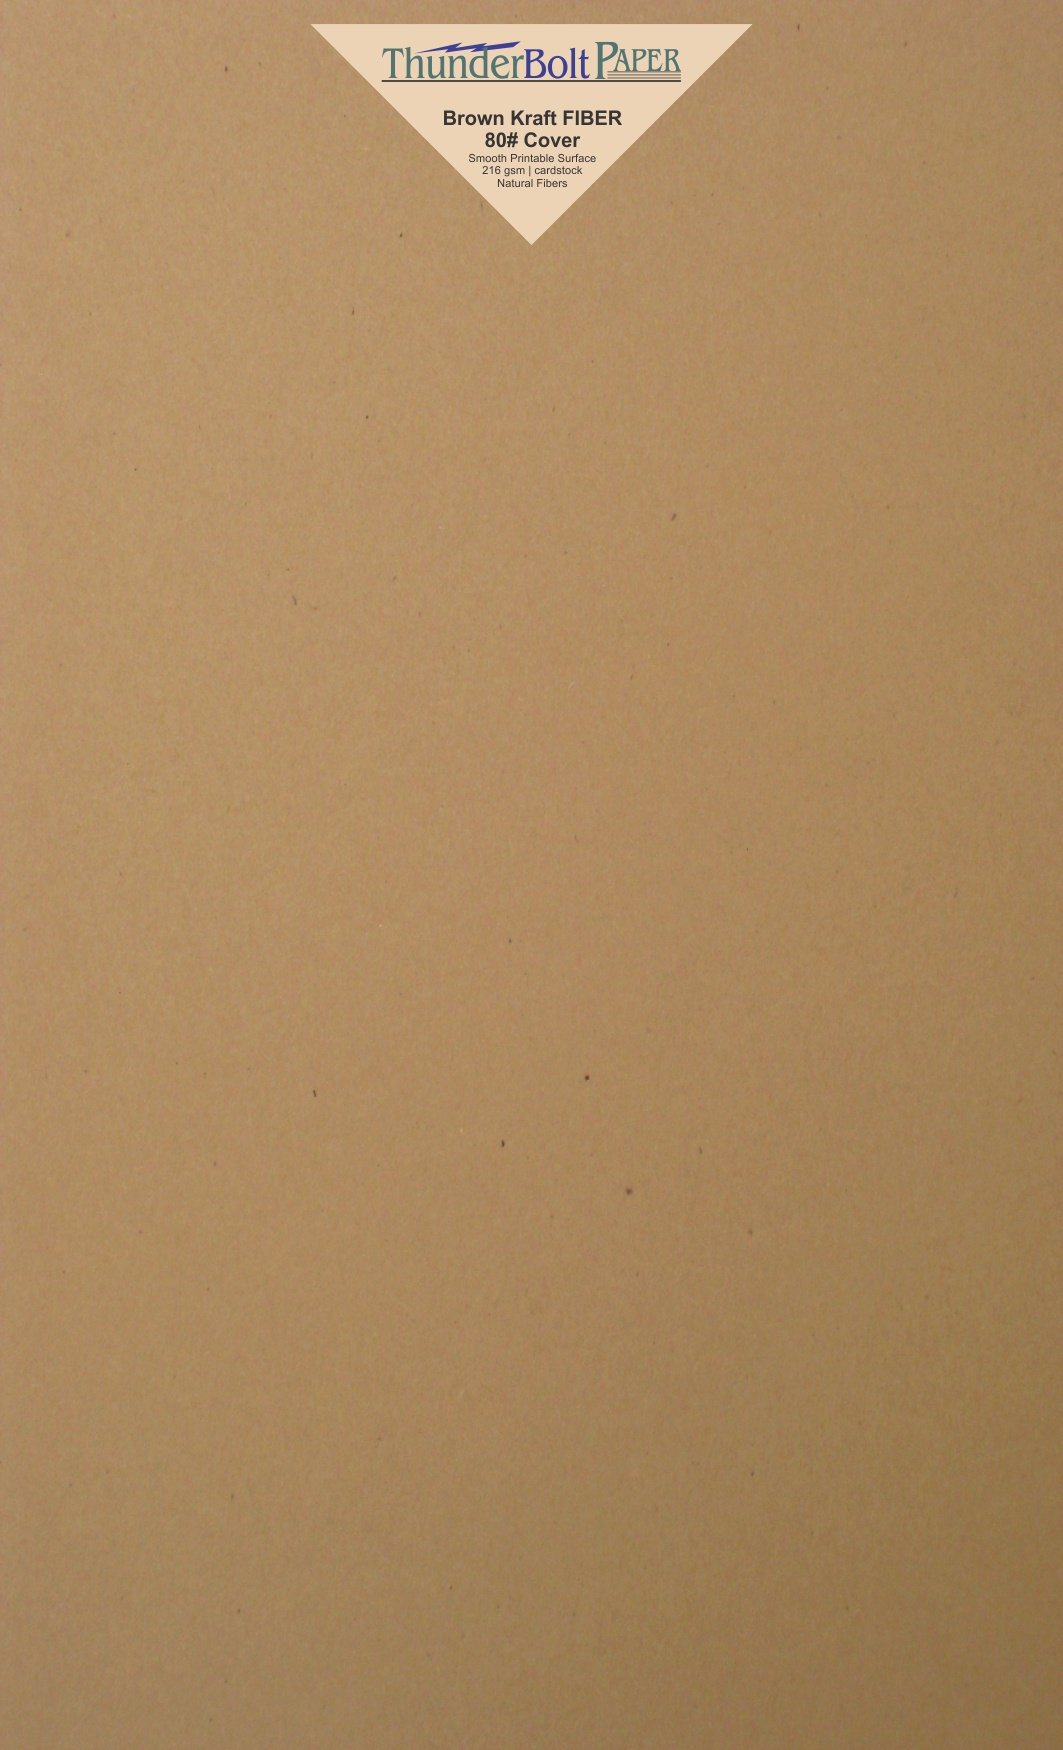 100 Brown Kraft Fiber 80# Cover Paper Sheets - 8.5'' X 14'' (8.5X14 Inches) Legal|Menu Size - Rich Earthy Color with Natural Fibers - 80lb/pound Cardstock - Smooth Finish